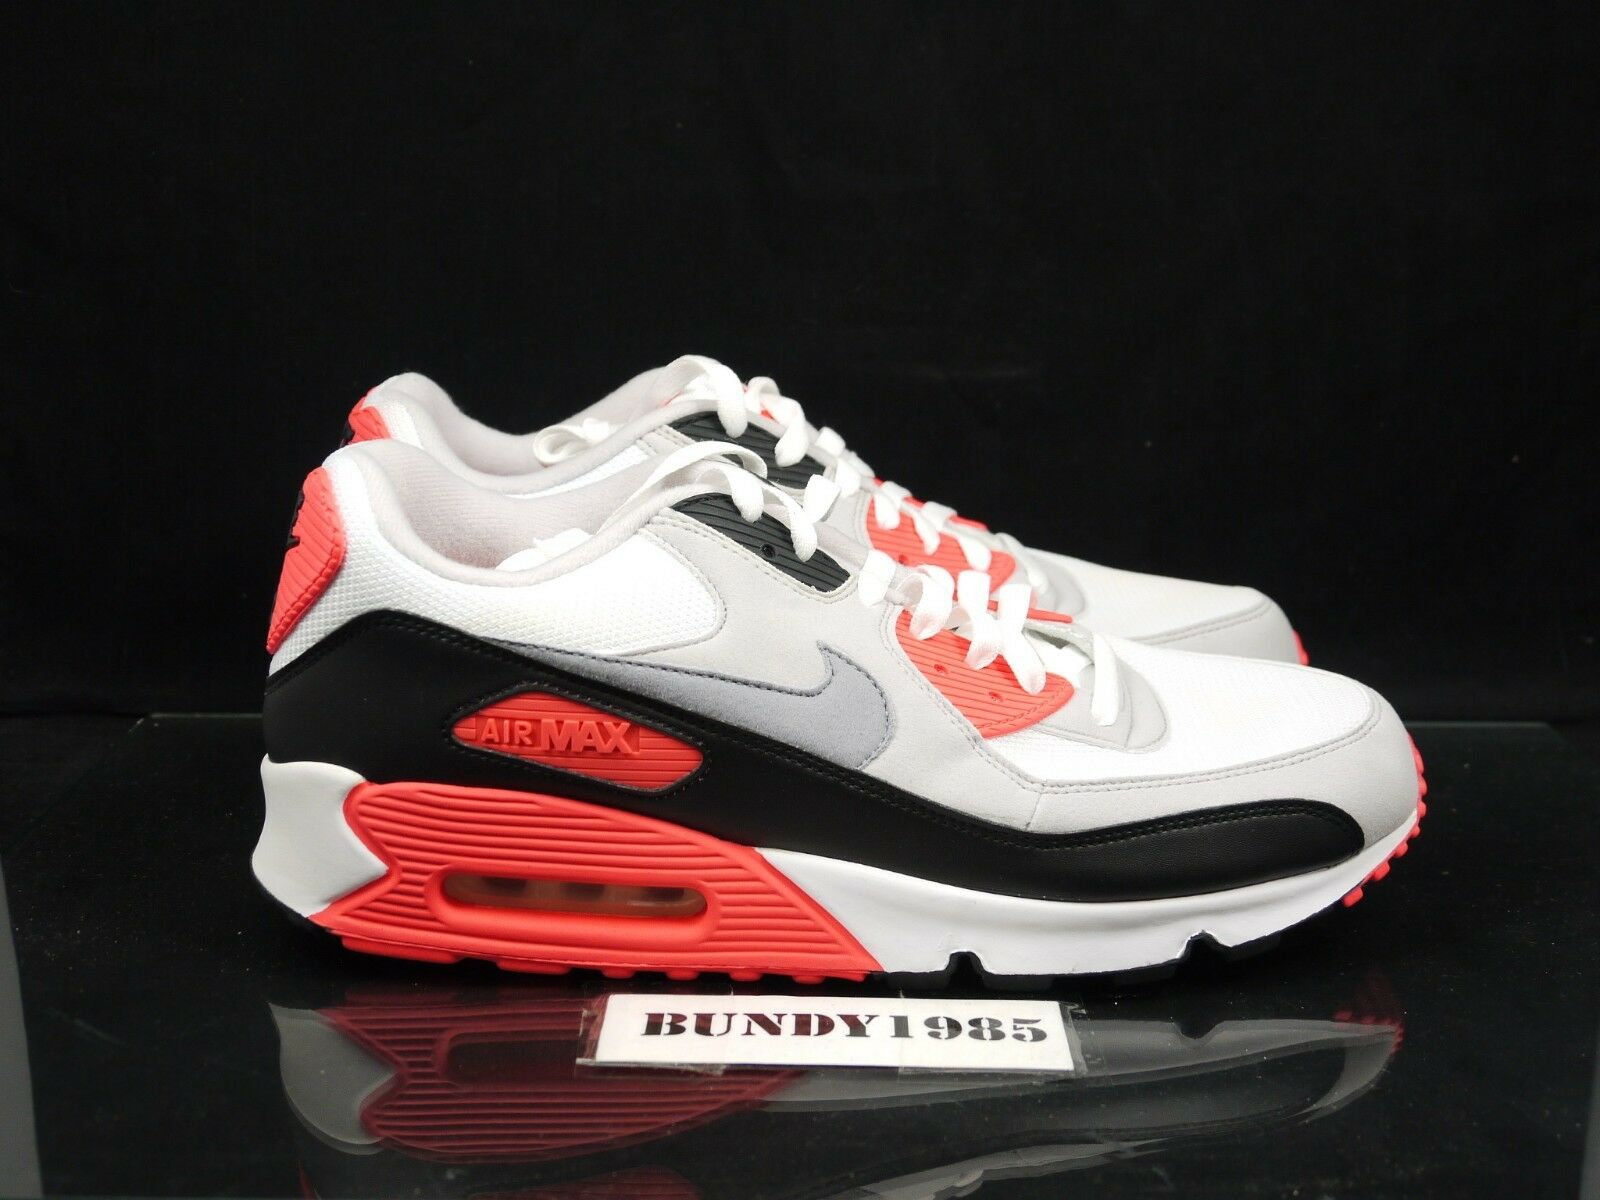 325018 107 Nike Air Max 90 2010 Infrared Men's SZ 13 hot lava volt supreme 2